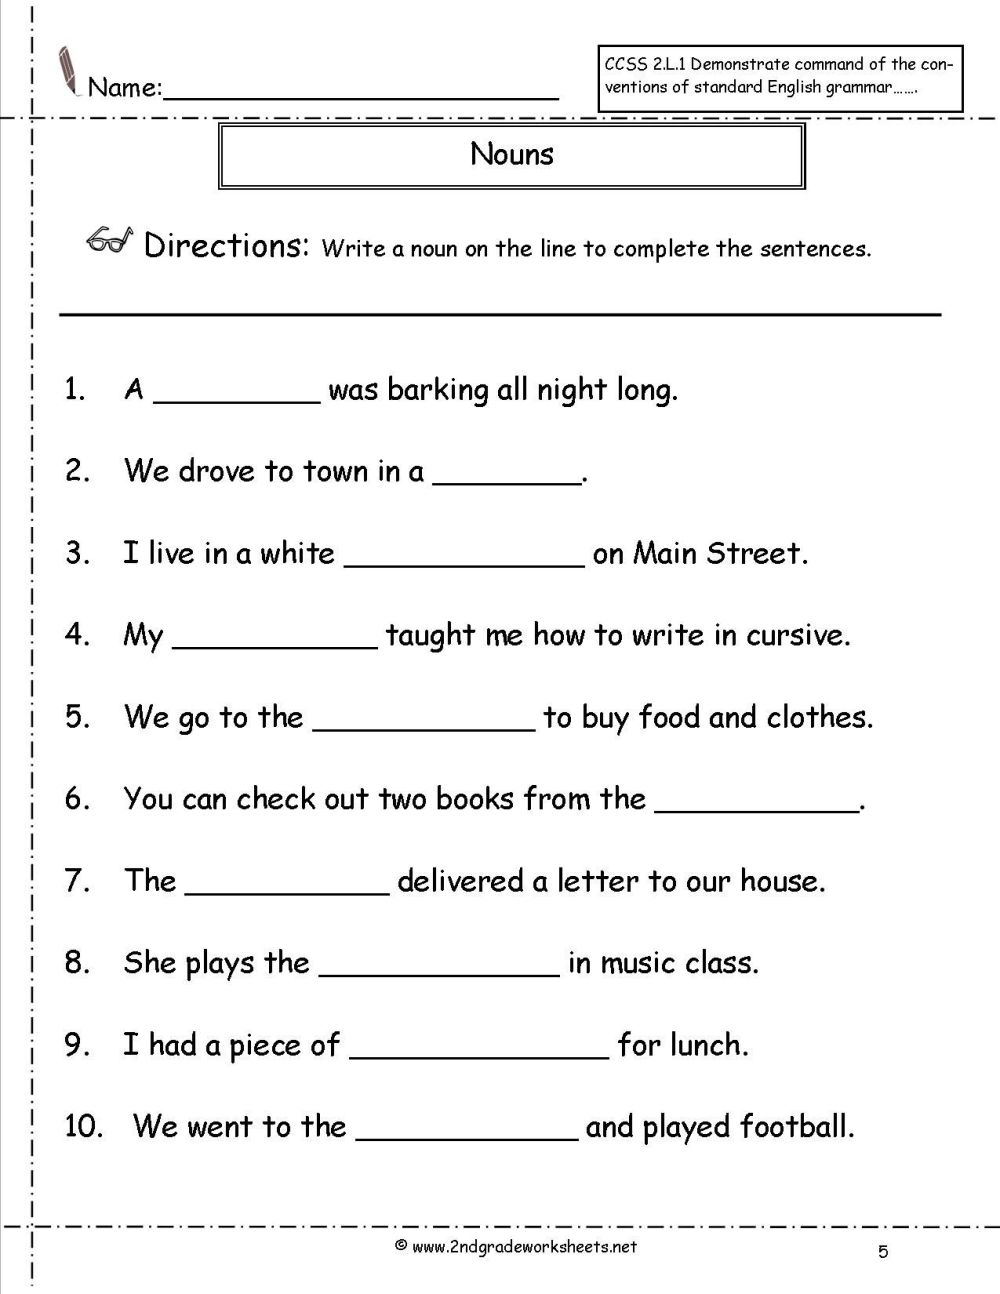 medium resolution of English Grammar Noun Worksheet For Grade 1 Elegant Nouns Worksheets on Best  Worksheets Collection 7422